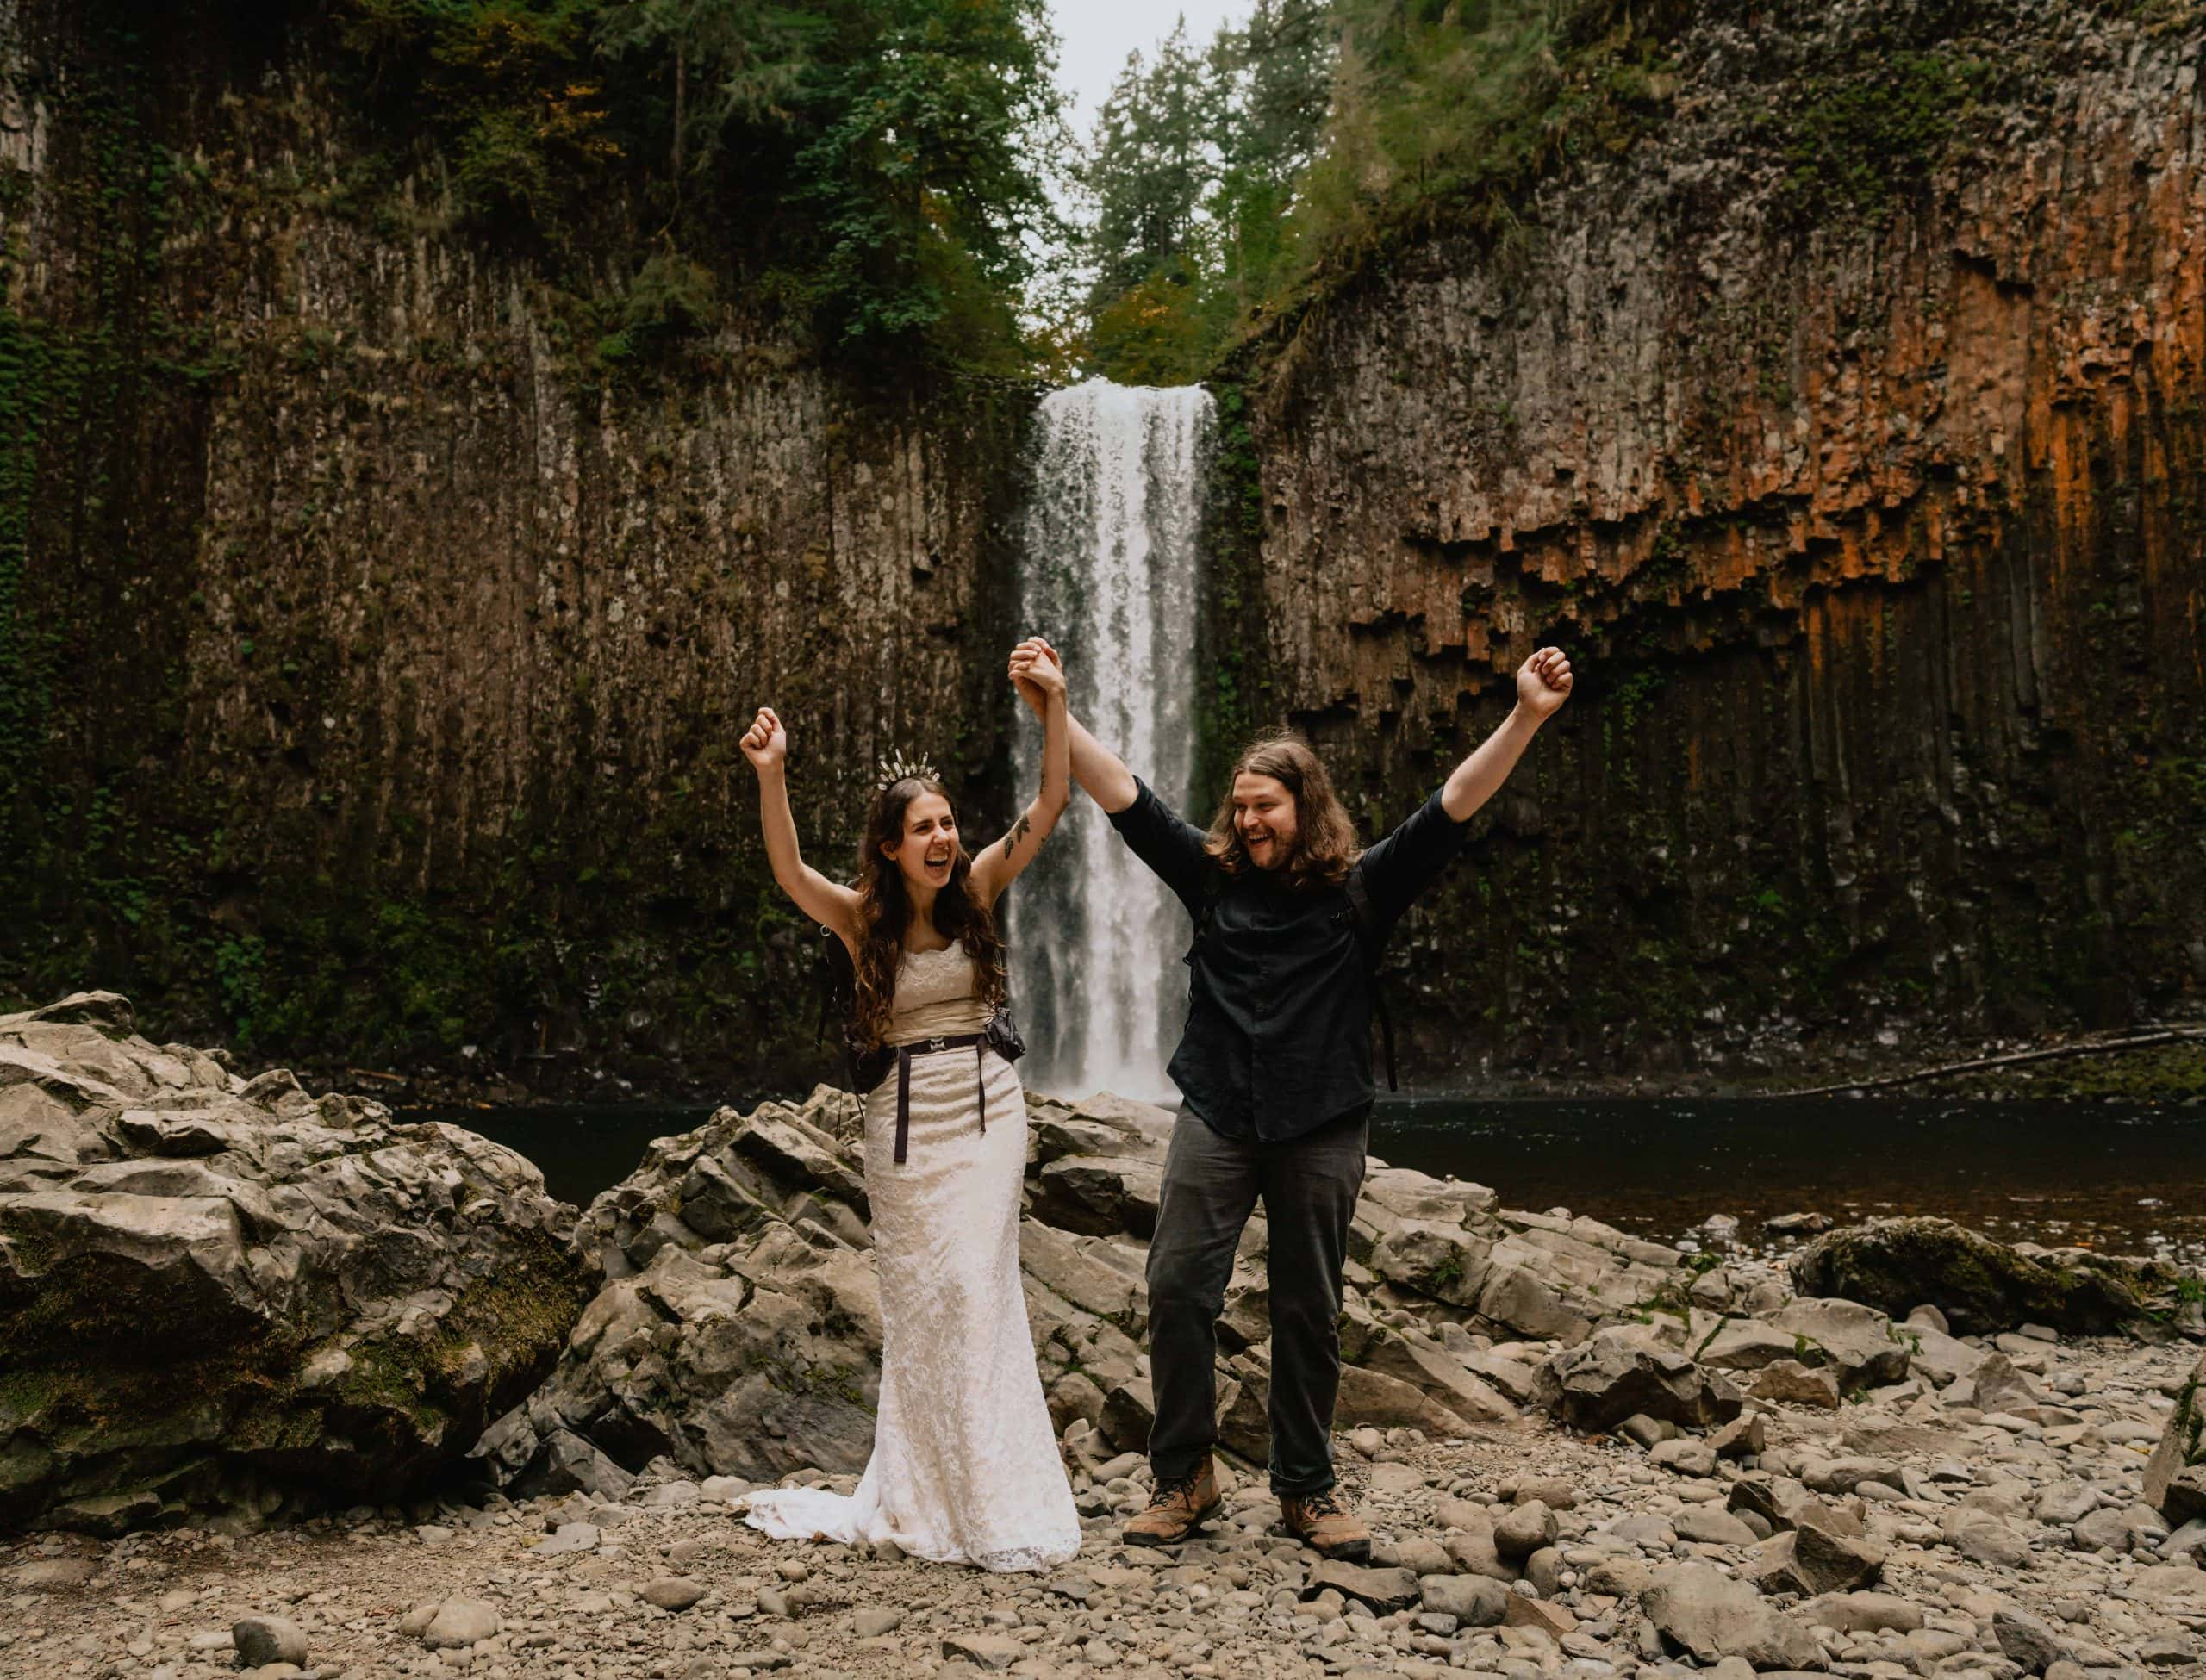 A couple cheering while wearing their backpacks during their adventurous waterfall elopement in Portland Oregon.